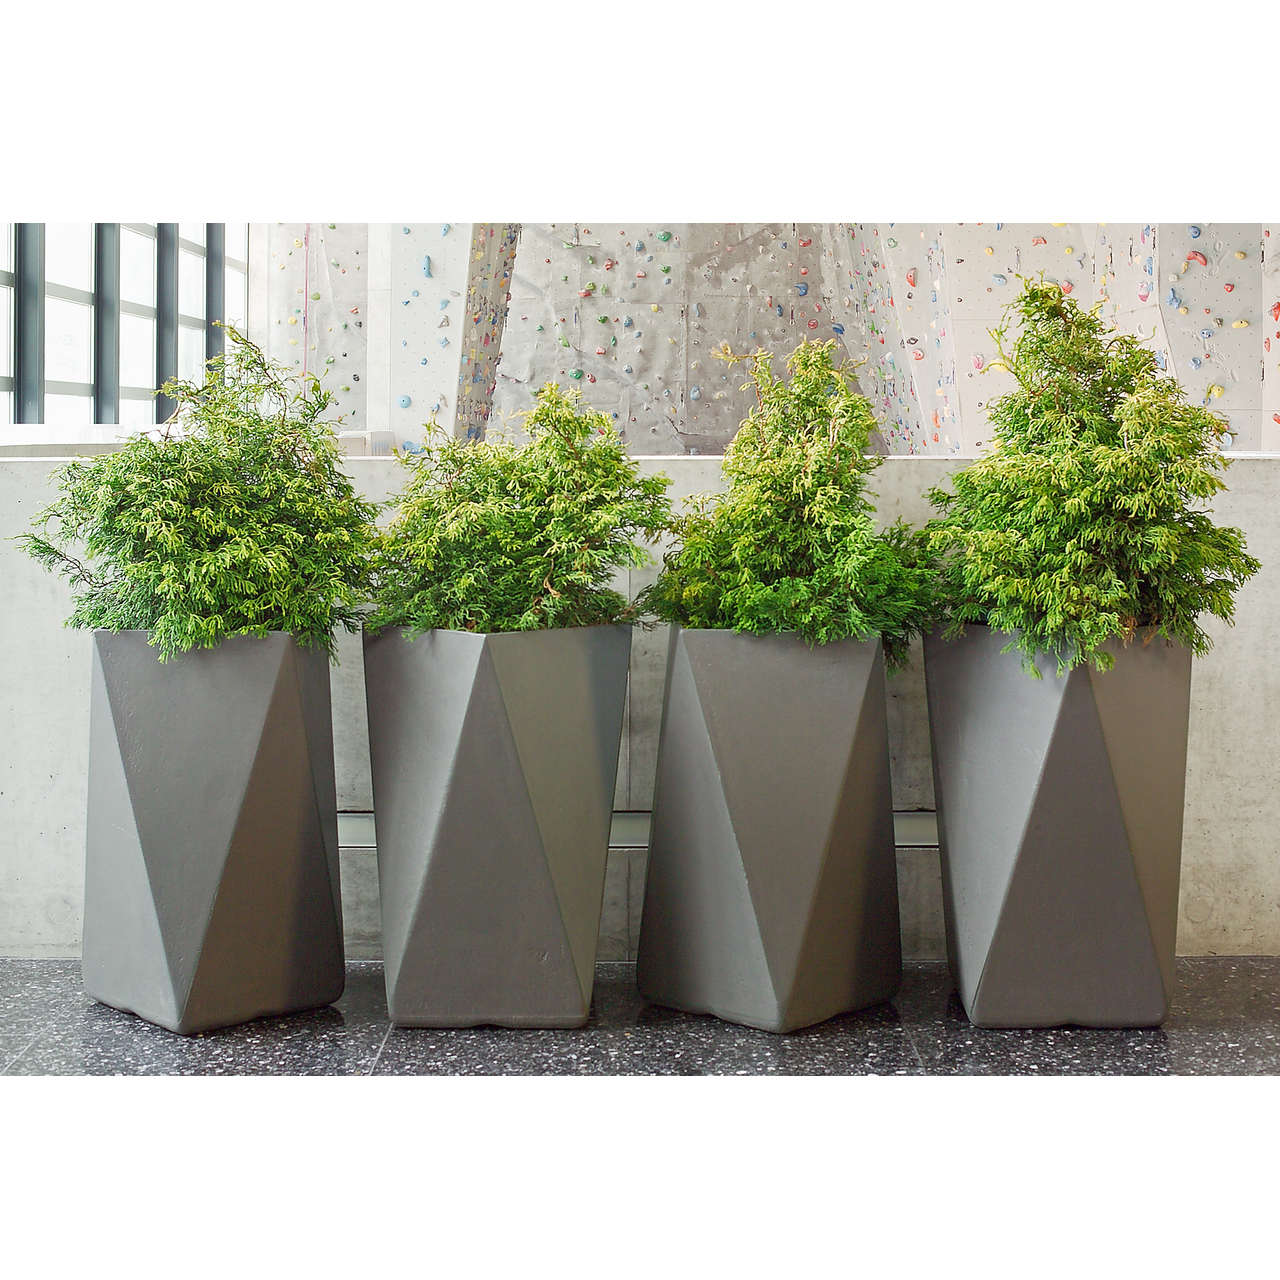 arrow container  material  fiber cement. modern cement garden planters  outdoor containers boxes on sale